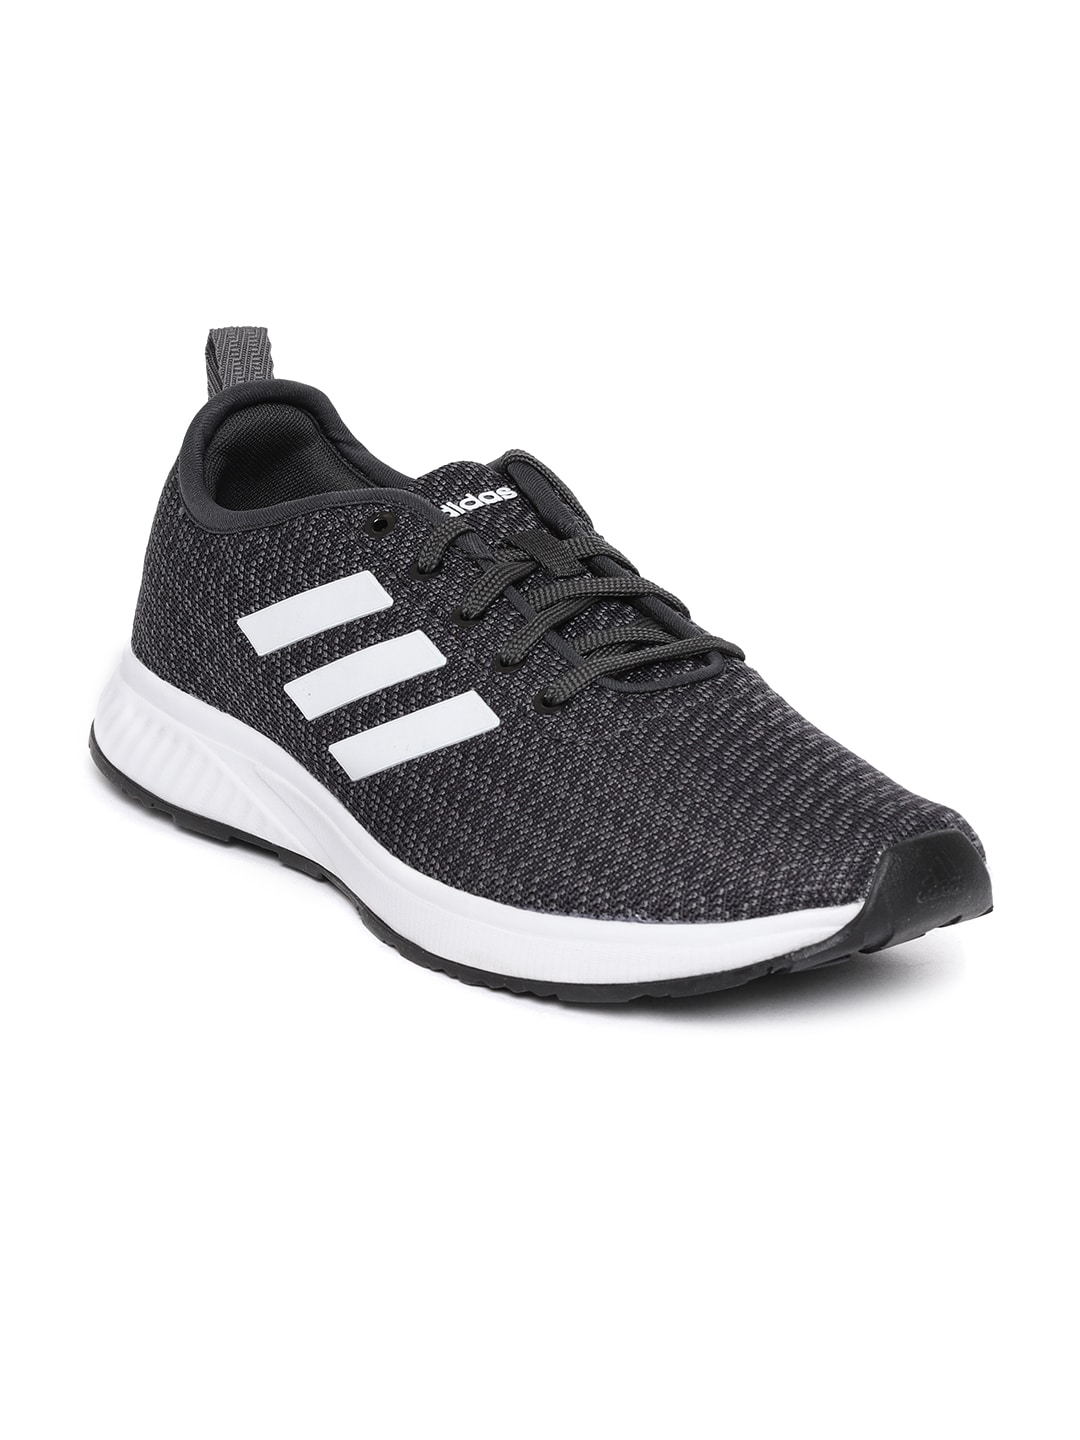 d6ee7bc5ac3a Adidas Sports Shoes - Buy Addidas Sports Shoes Online